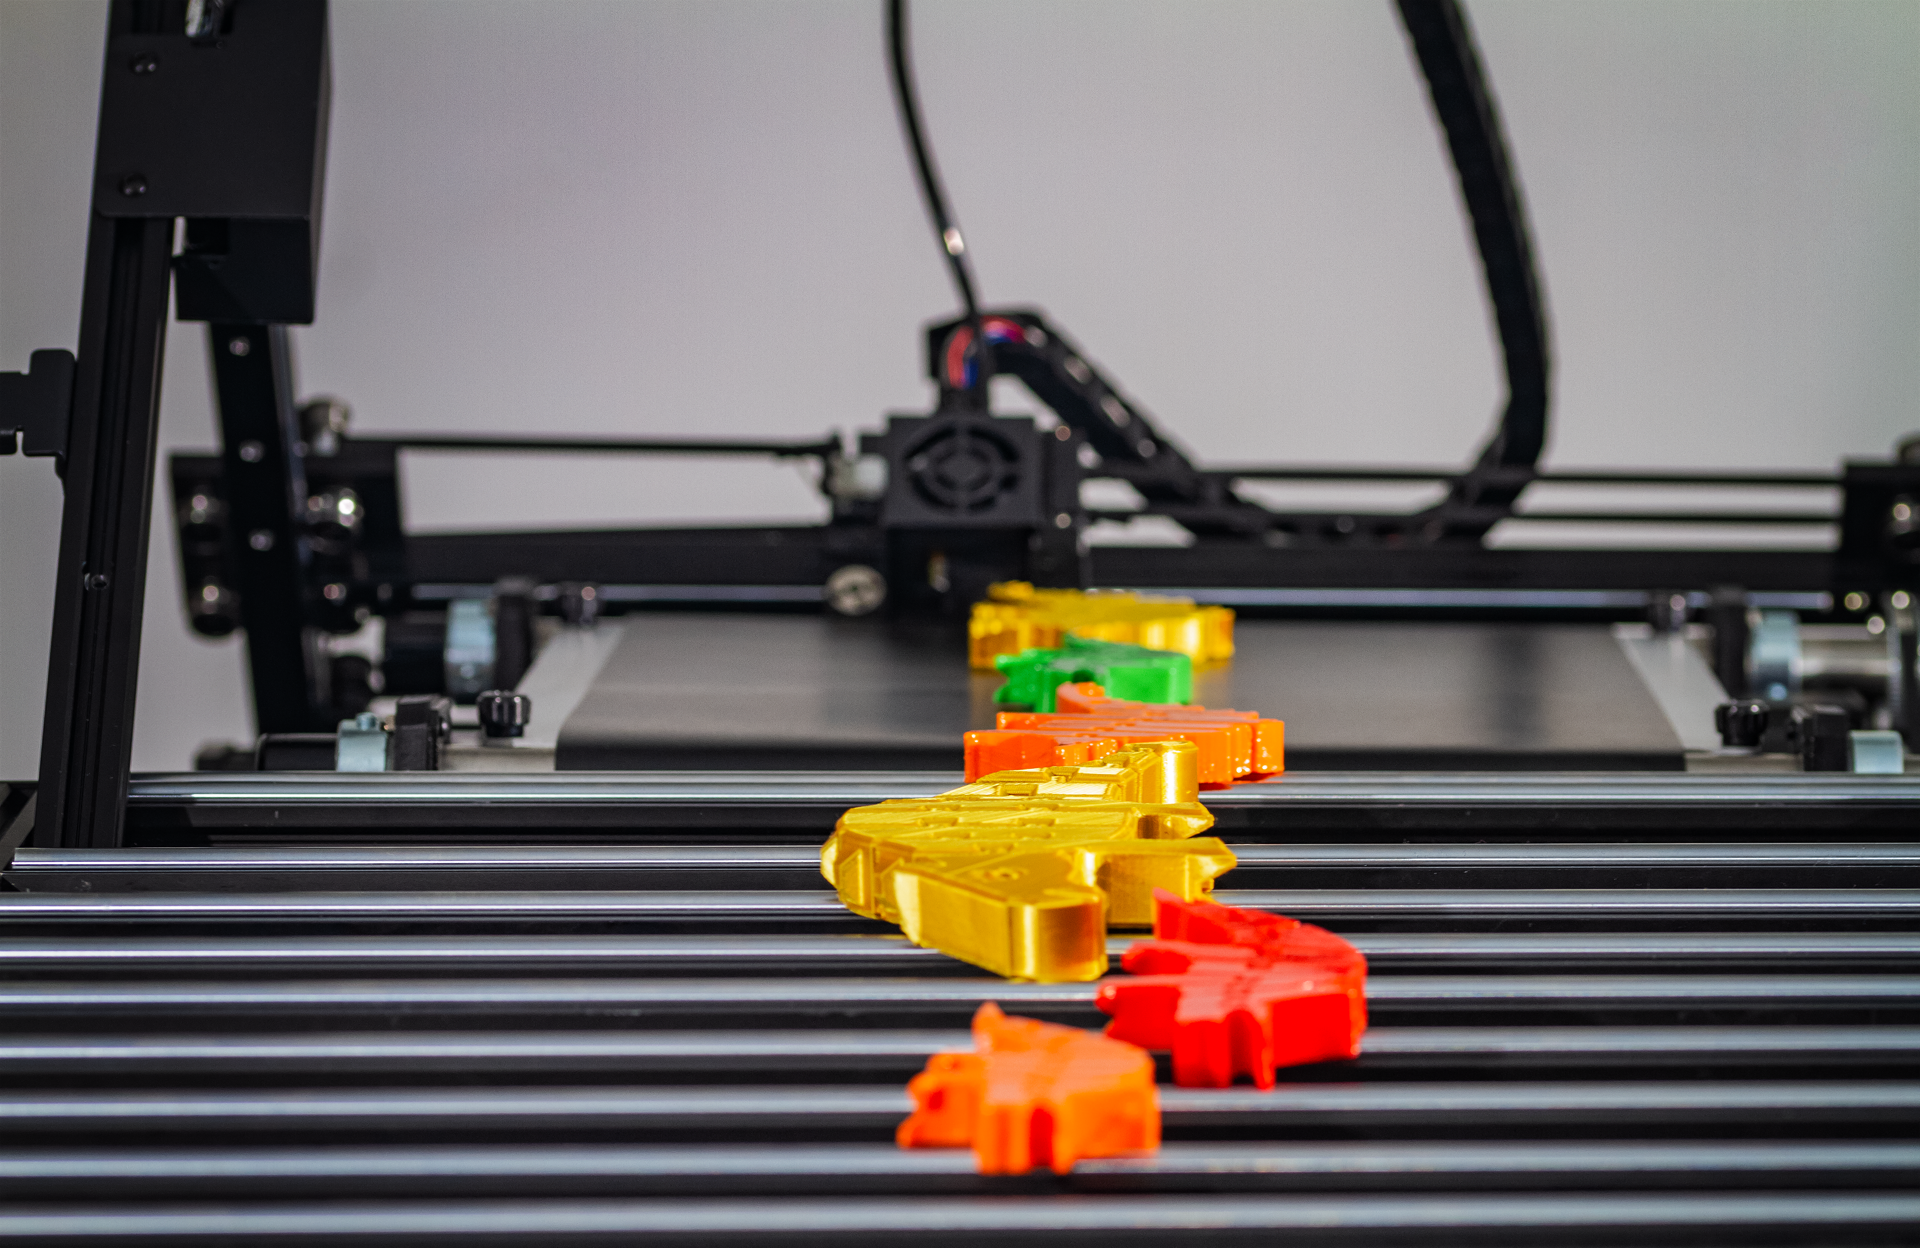 Continuous 3D printing on the iFactory One. Photo via iFactory3D.